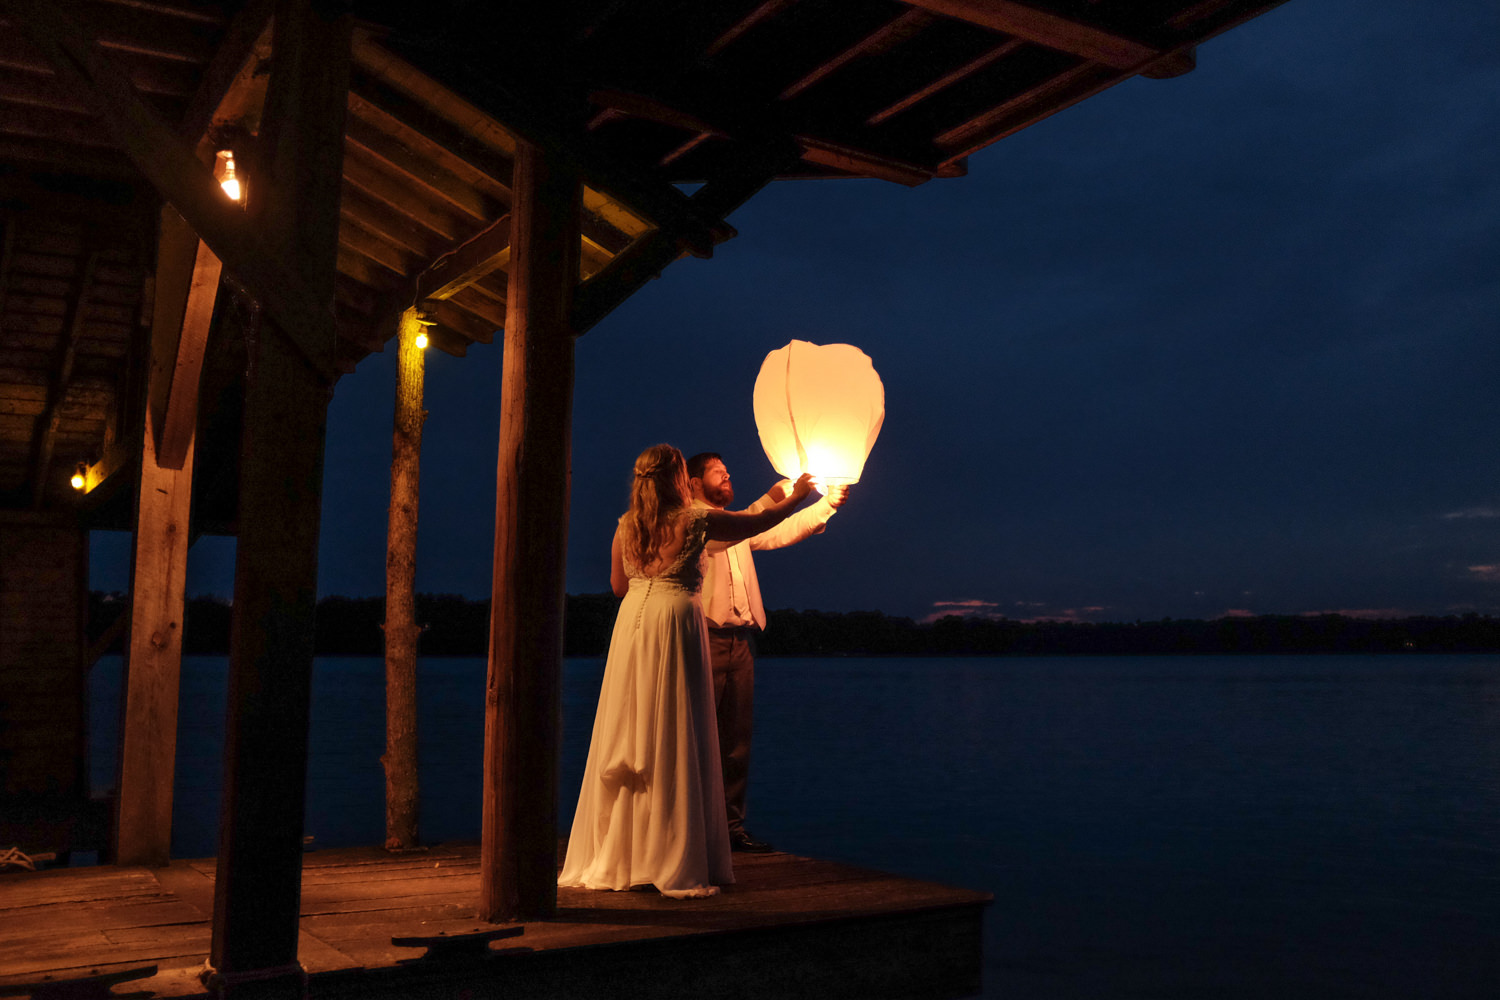 Releasing Chinese lanterns from the boat house at Stout's Island